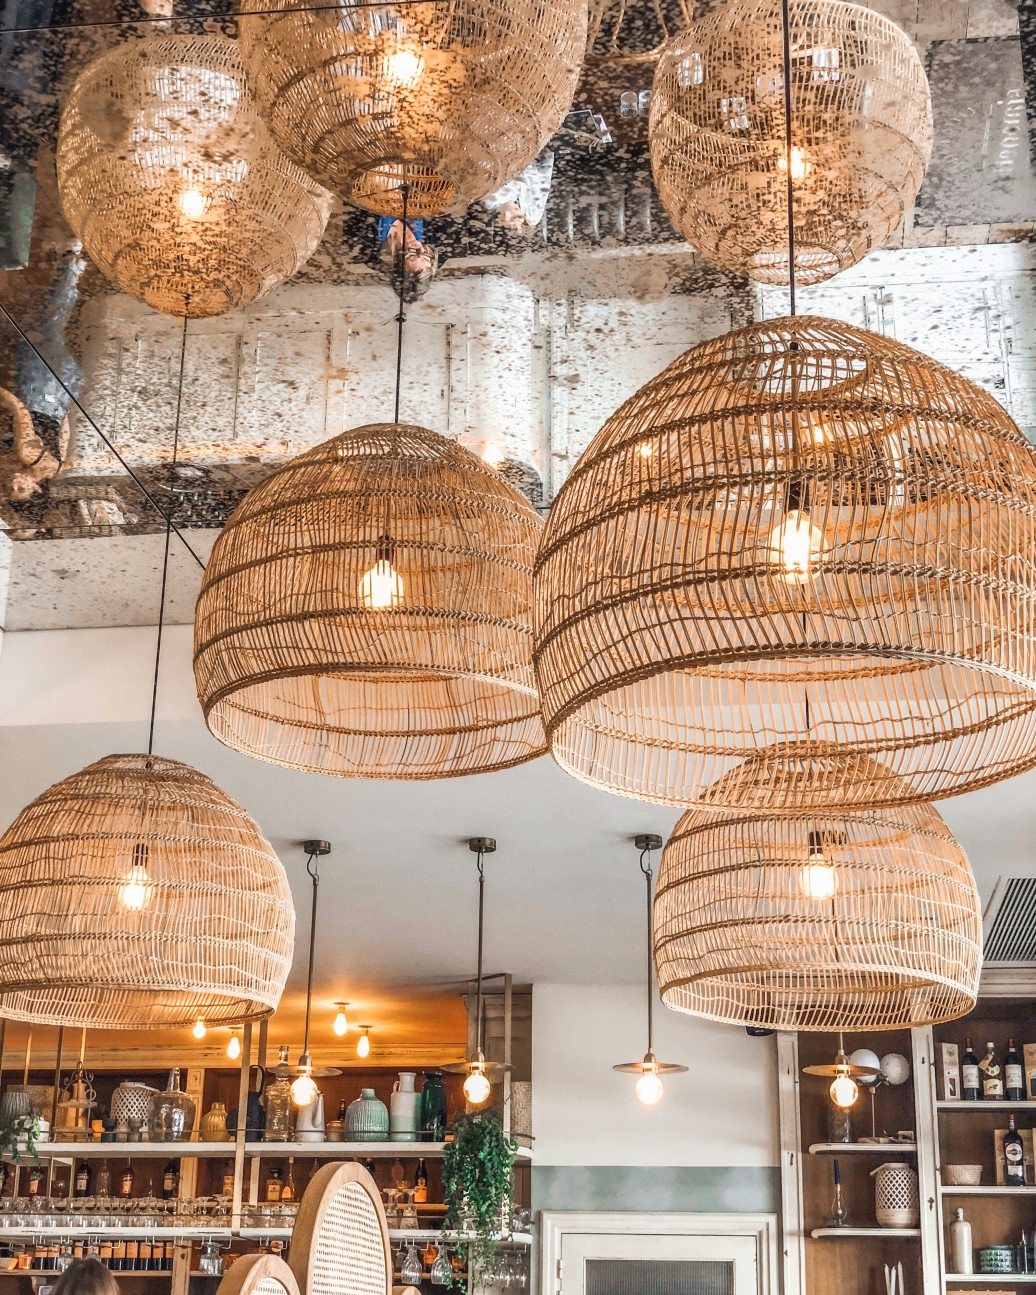 Rattan light pendants-Photo by Vincent Rivaud from Pexels